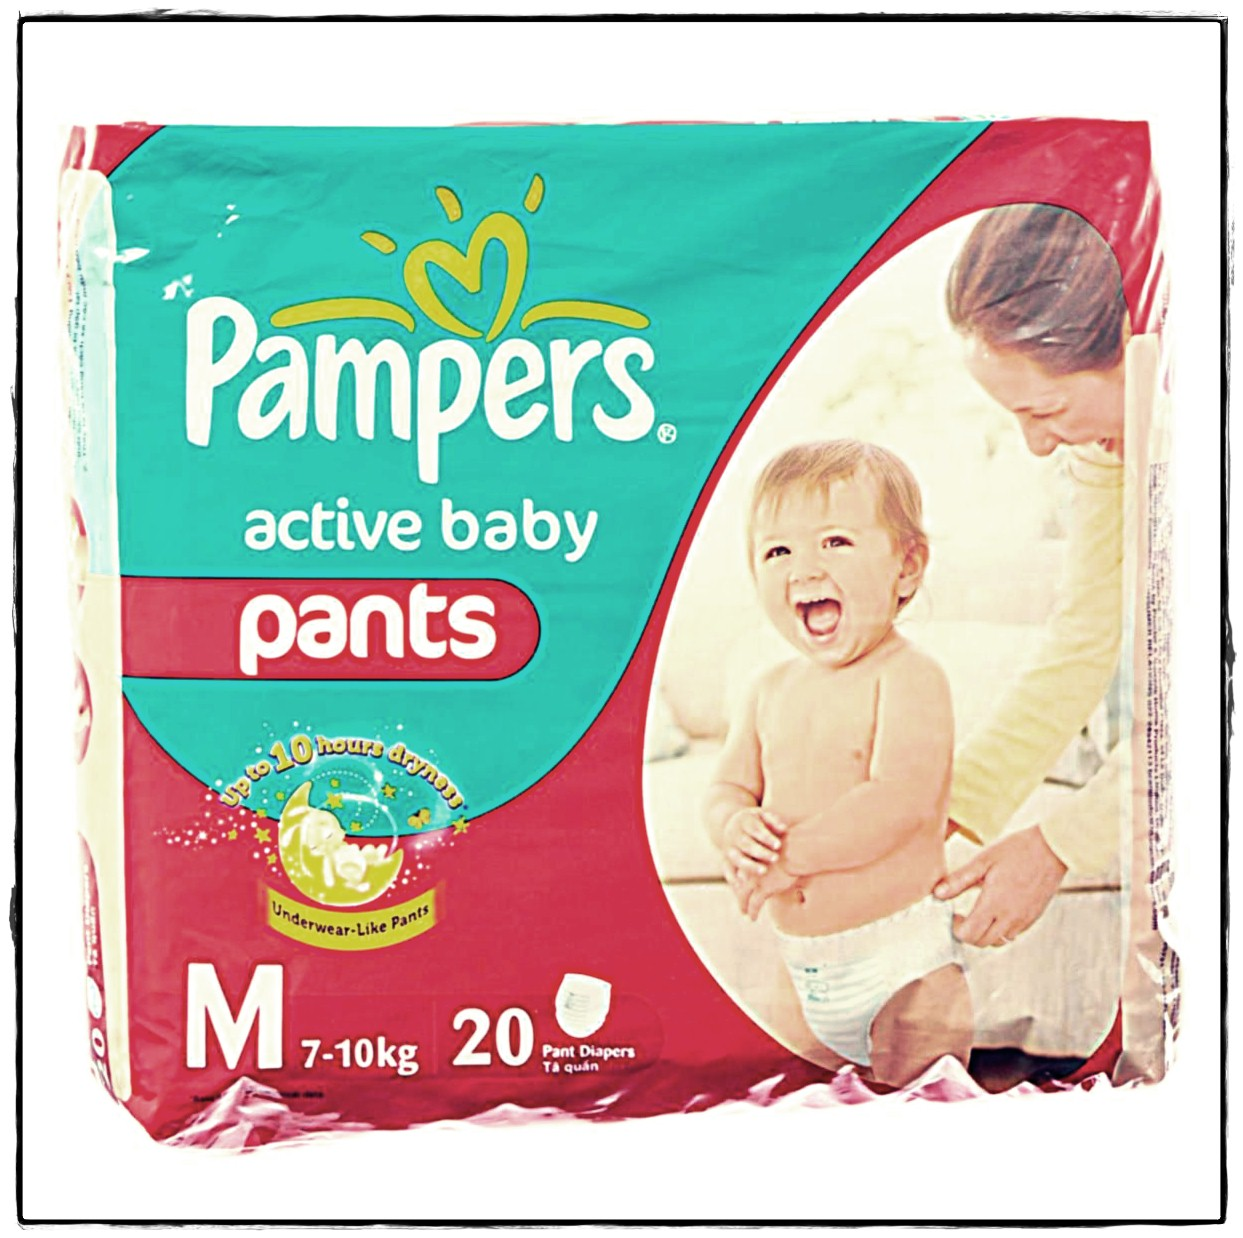 Share My World January 2013 Mamypoko Standar Popok Pants Xl 20 Pulau Jawa Only Pampers Active Baby